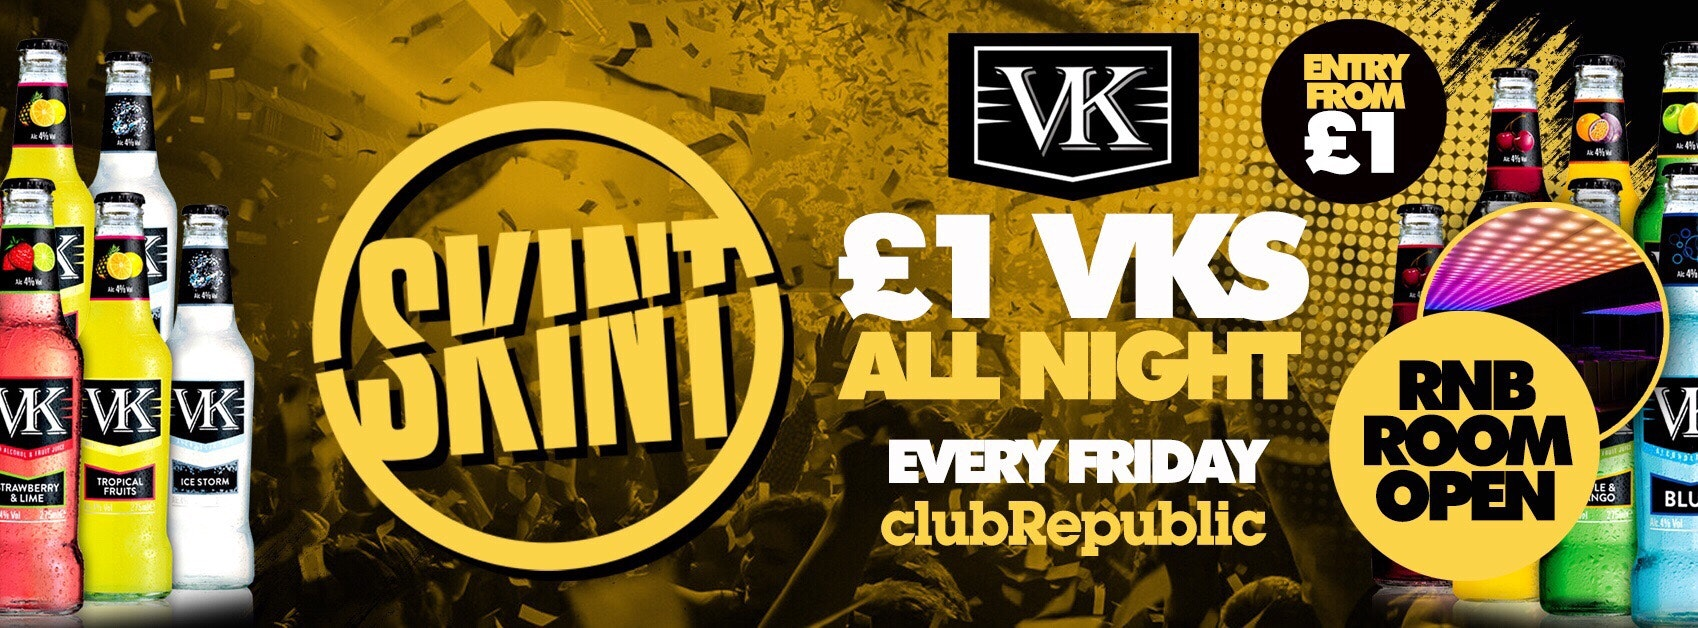 ★ Skint Fridays ★ £1 VK's Allnight! ★ Club Republic ★ R&B Room Open!